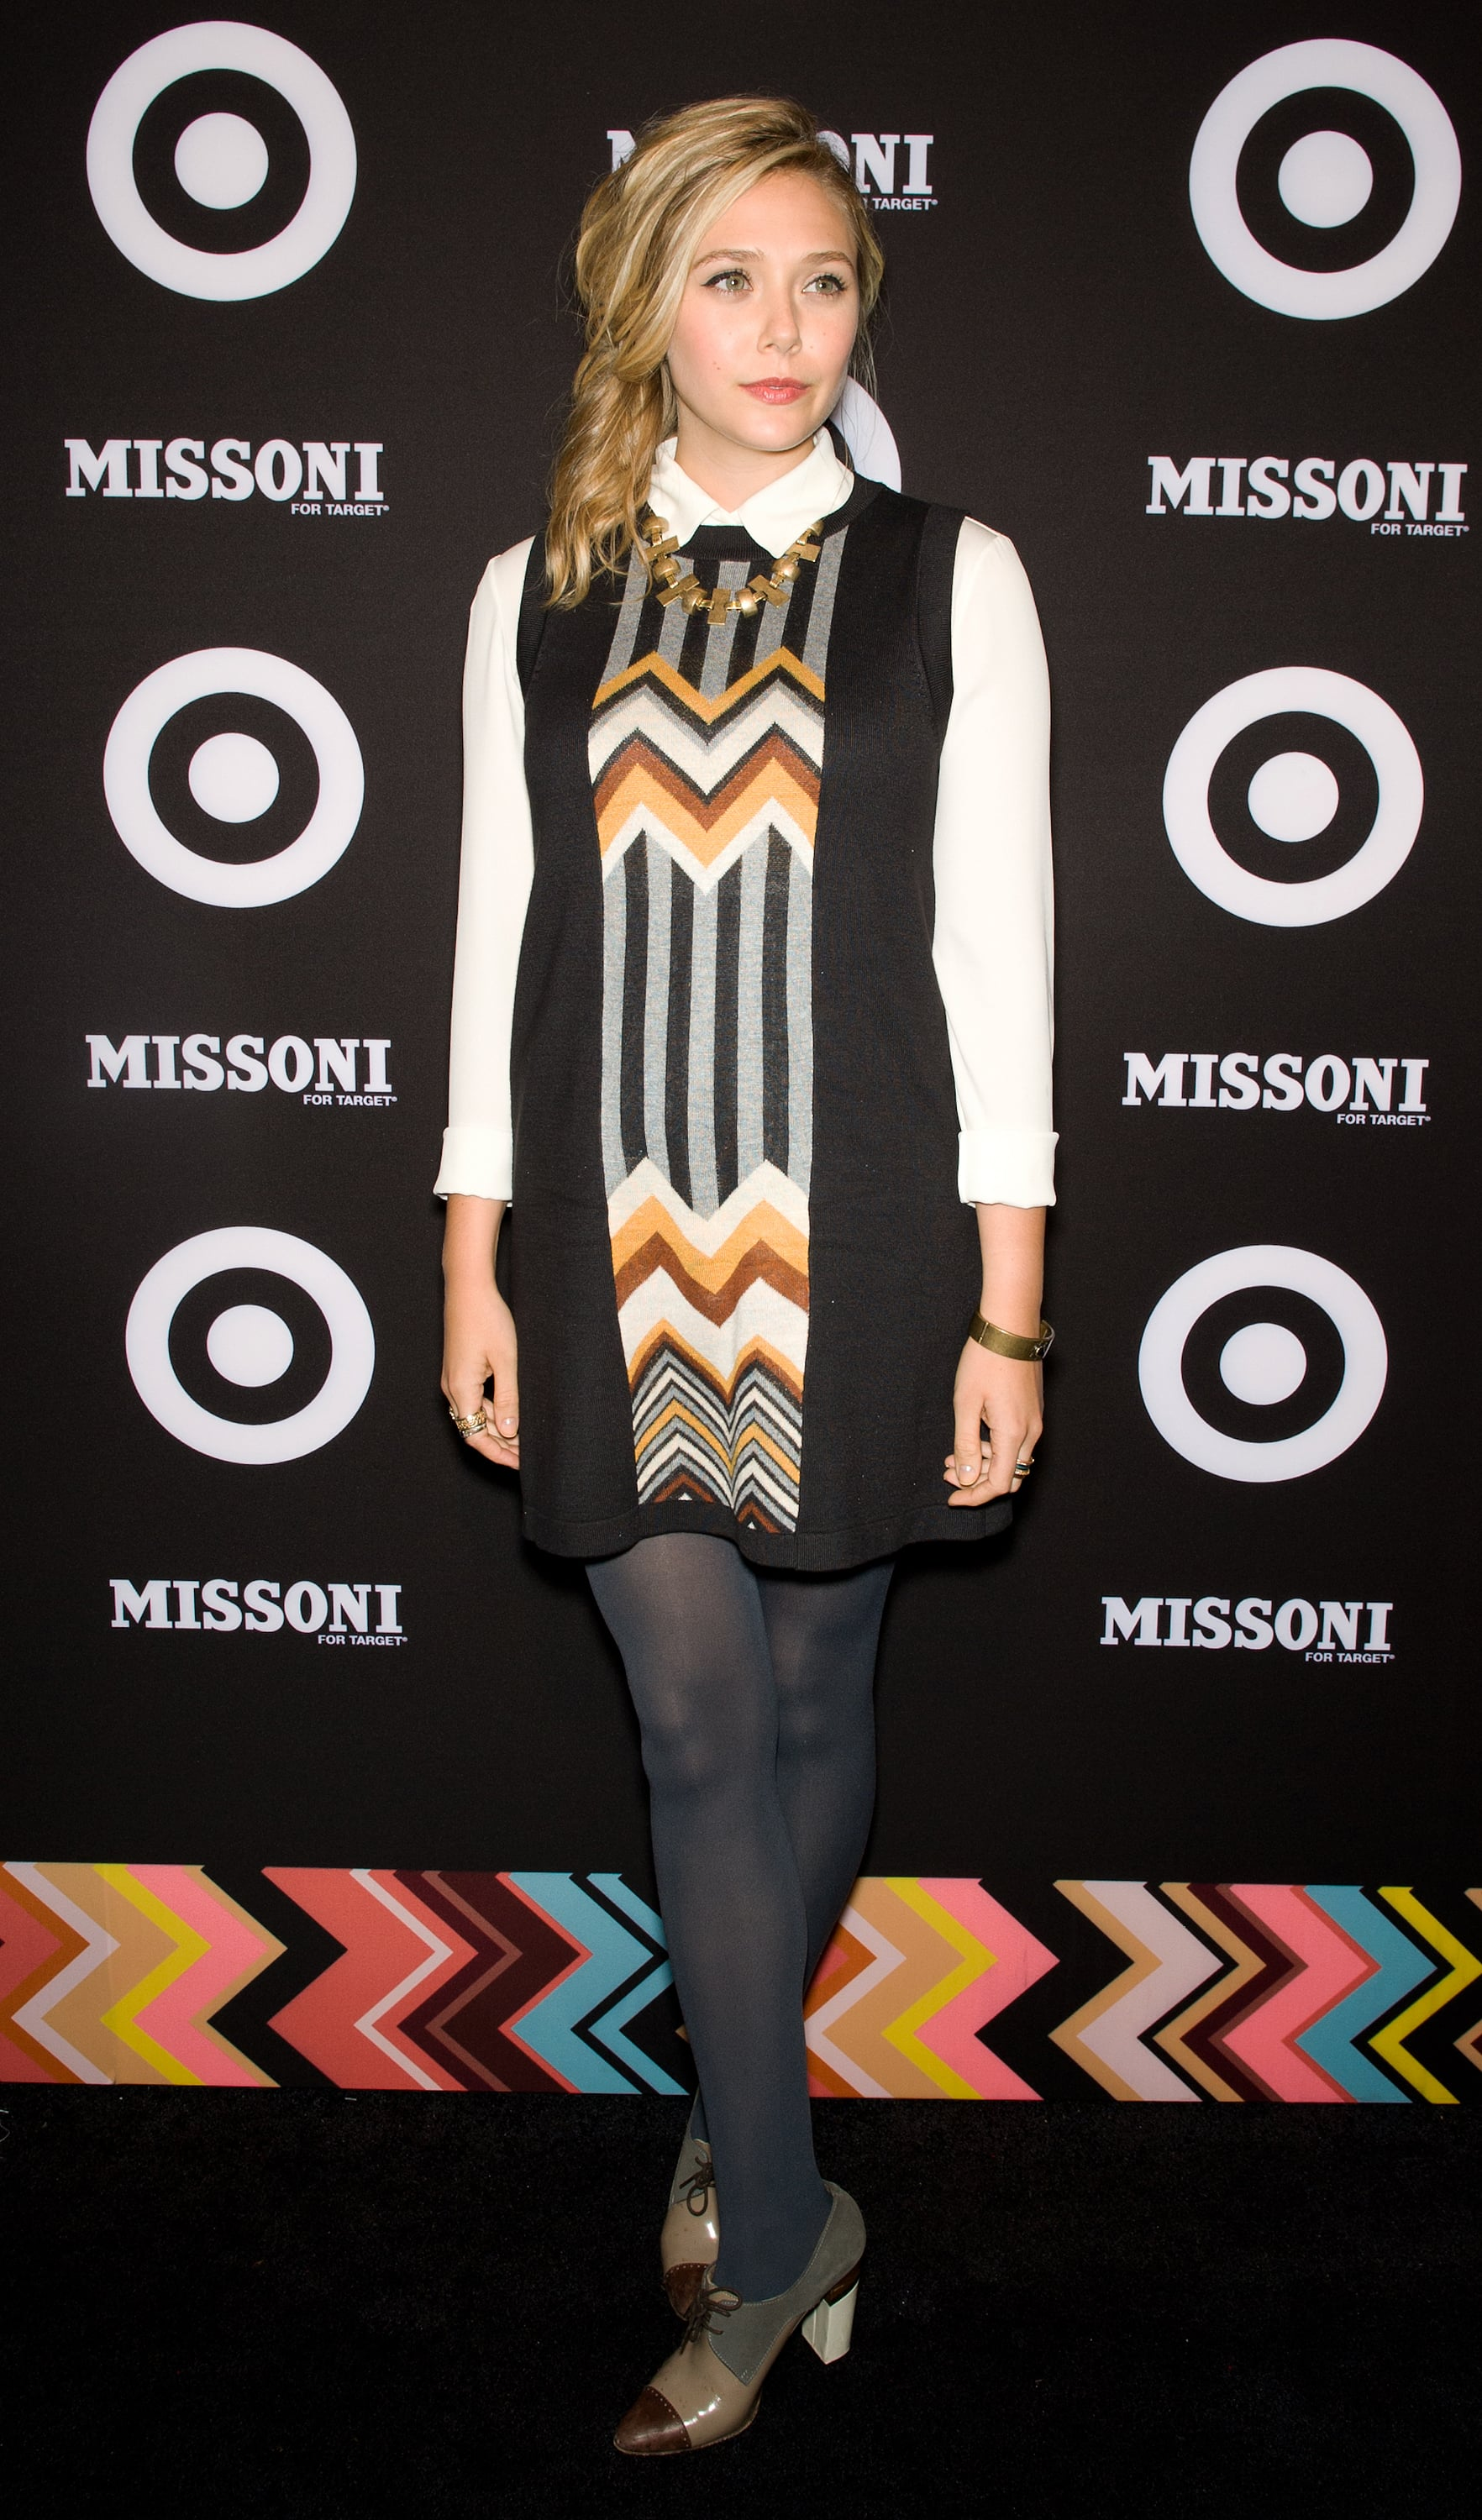 Target for missoni launch rare photo